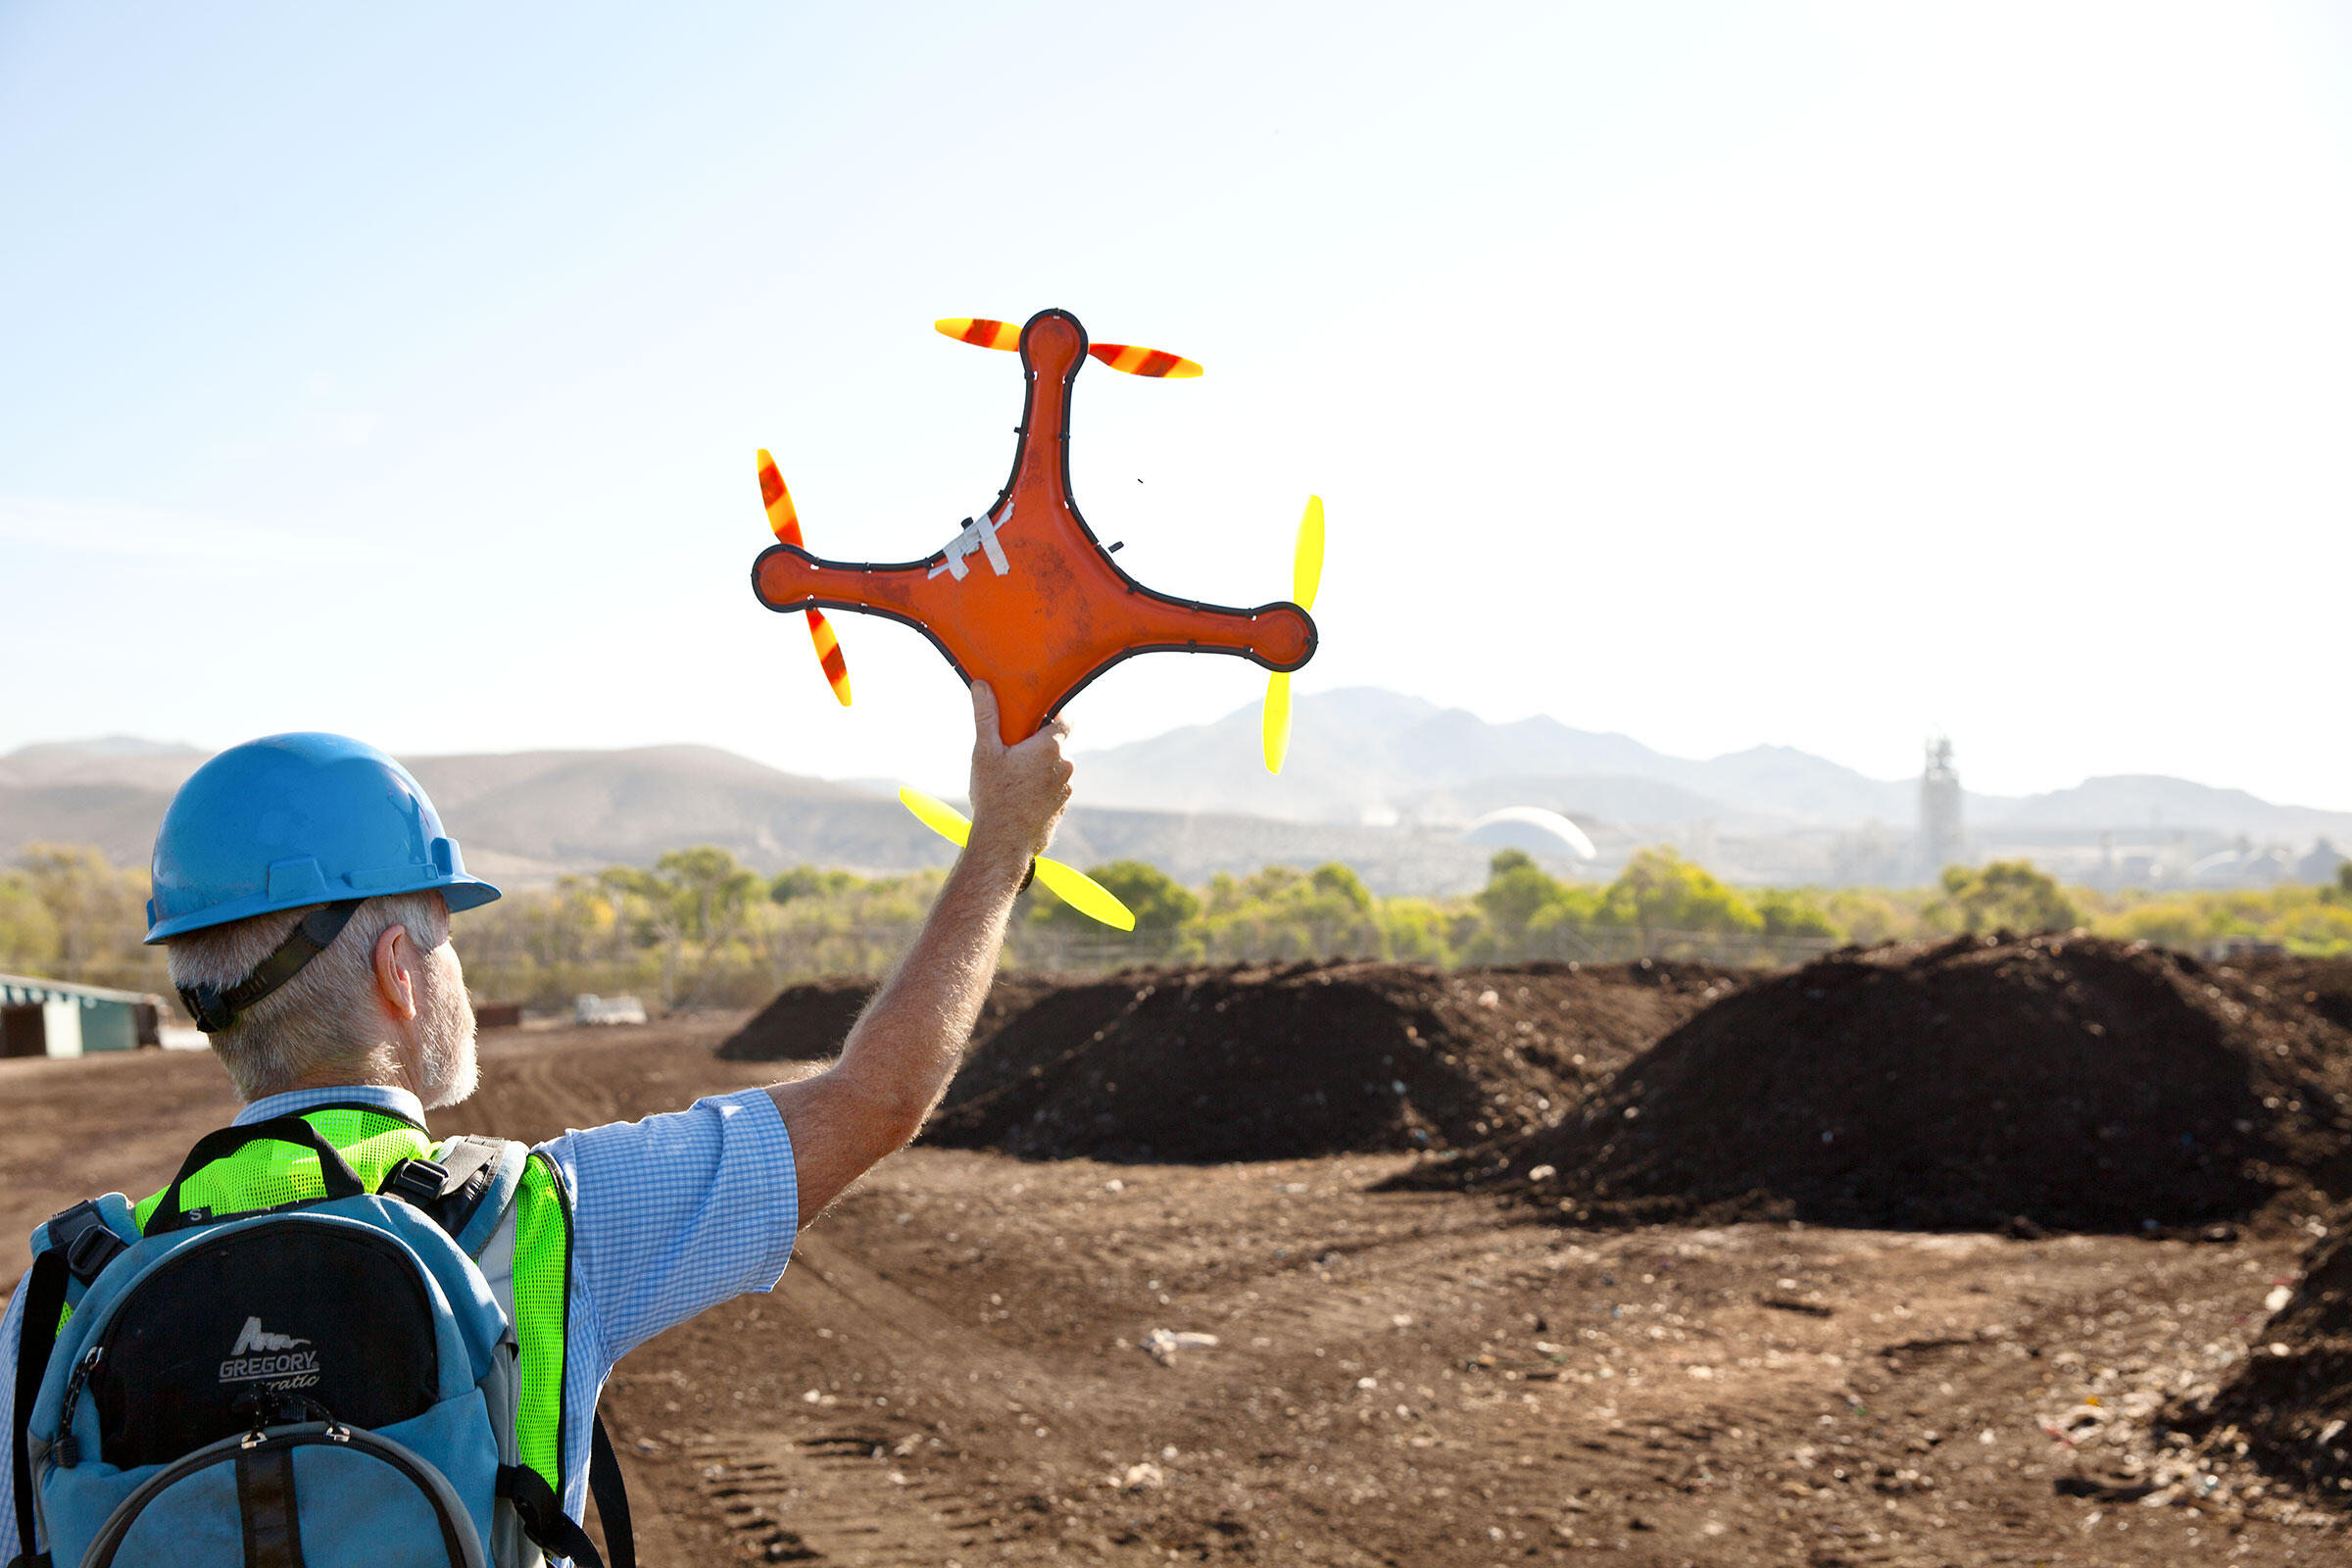 Tim Shields with a drone, one of a number of technologies being tested as bird deterrents. Tom Fowlks